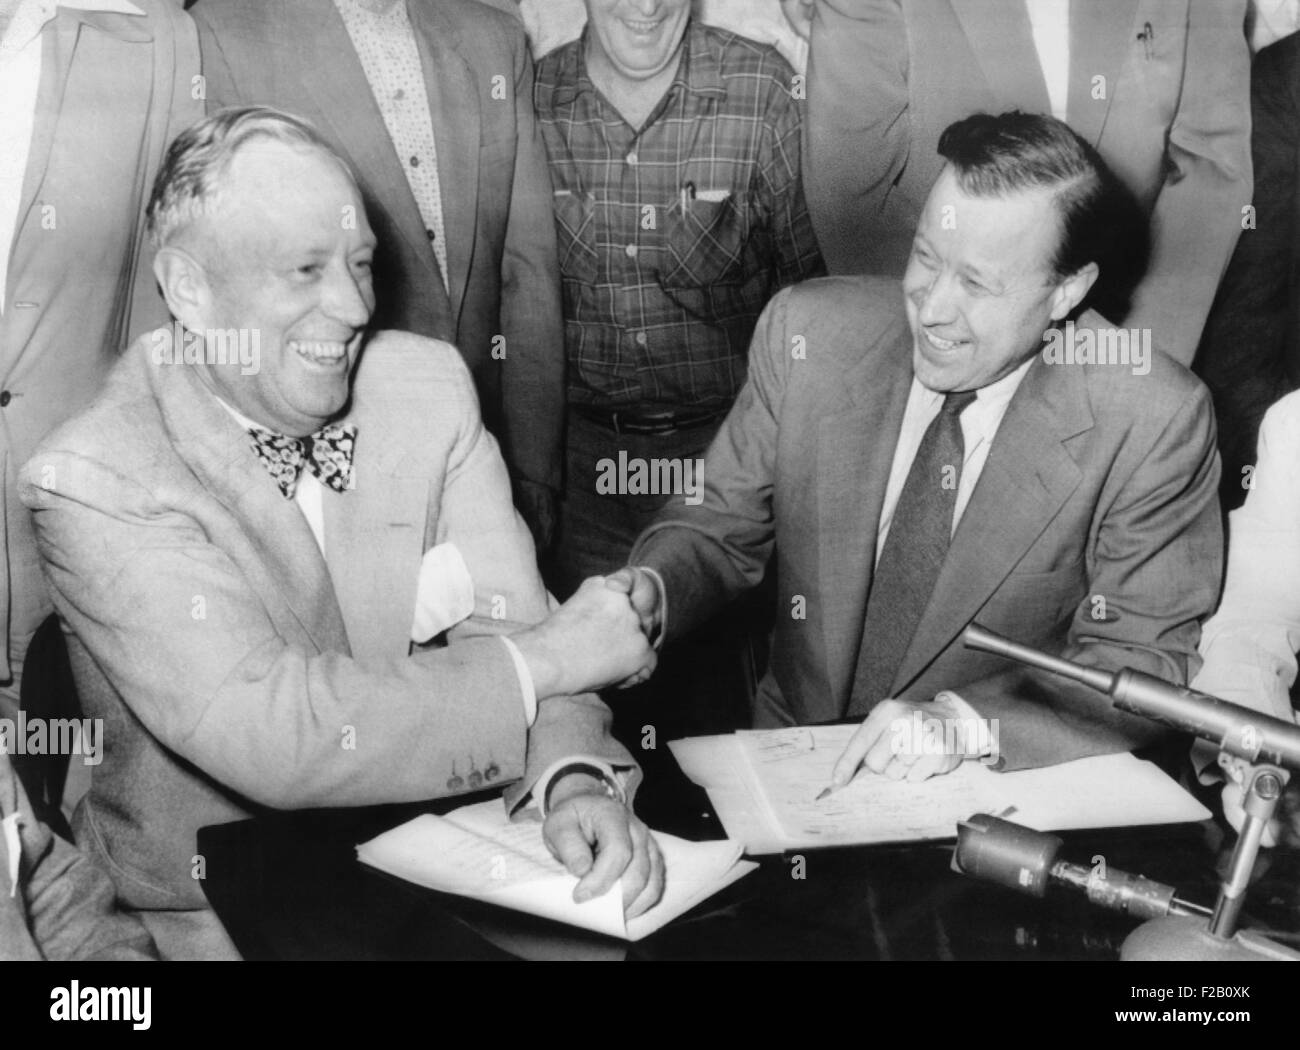 Harry W. Anderson (left), General Motors VP in charge of industrial relations and Walter Reuther. June 13, 1955. - Stock Image